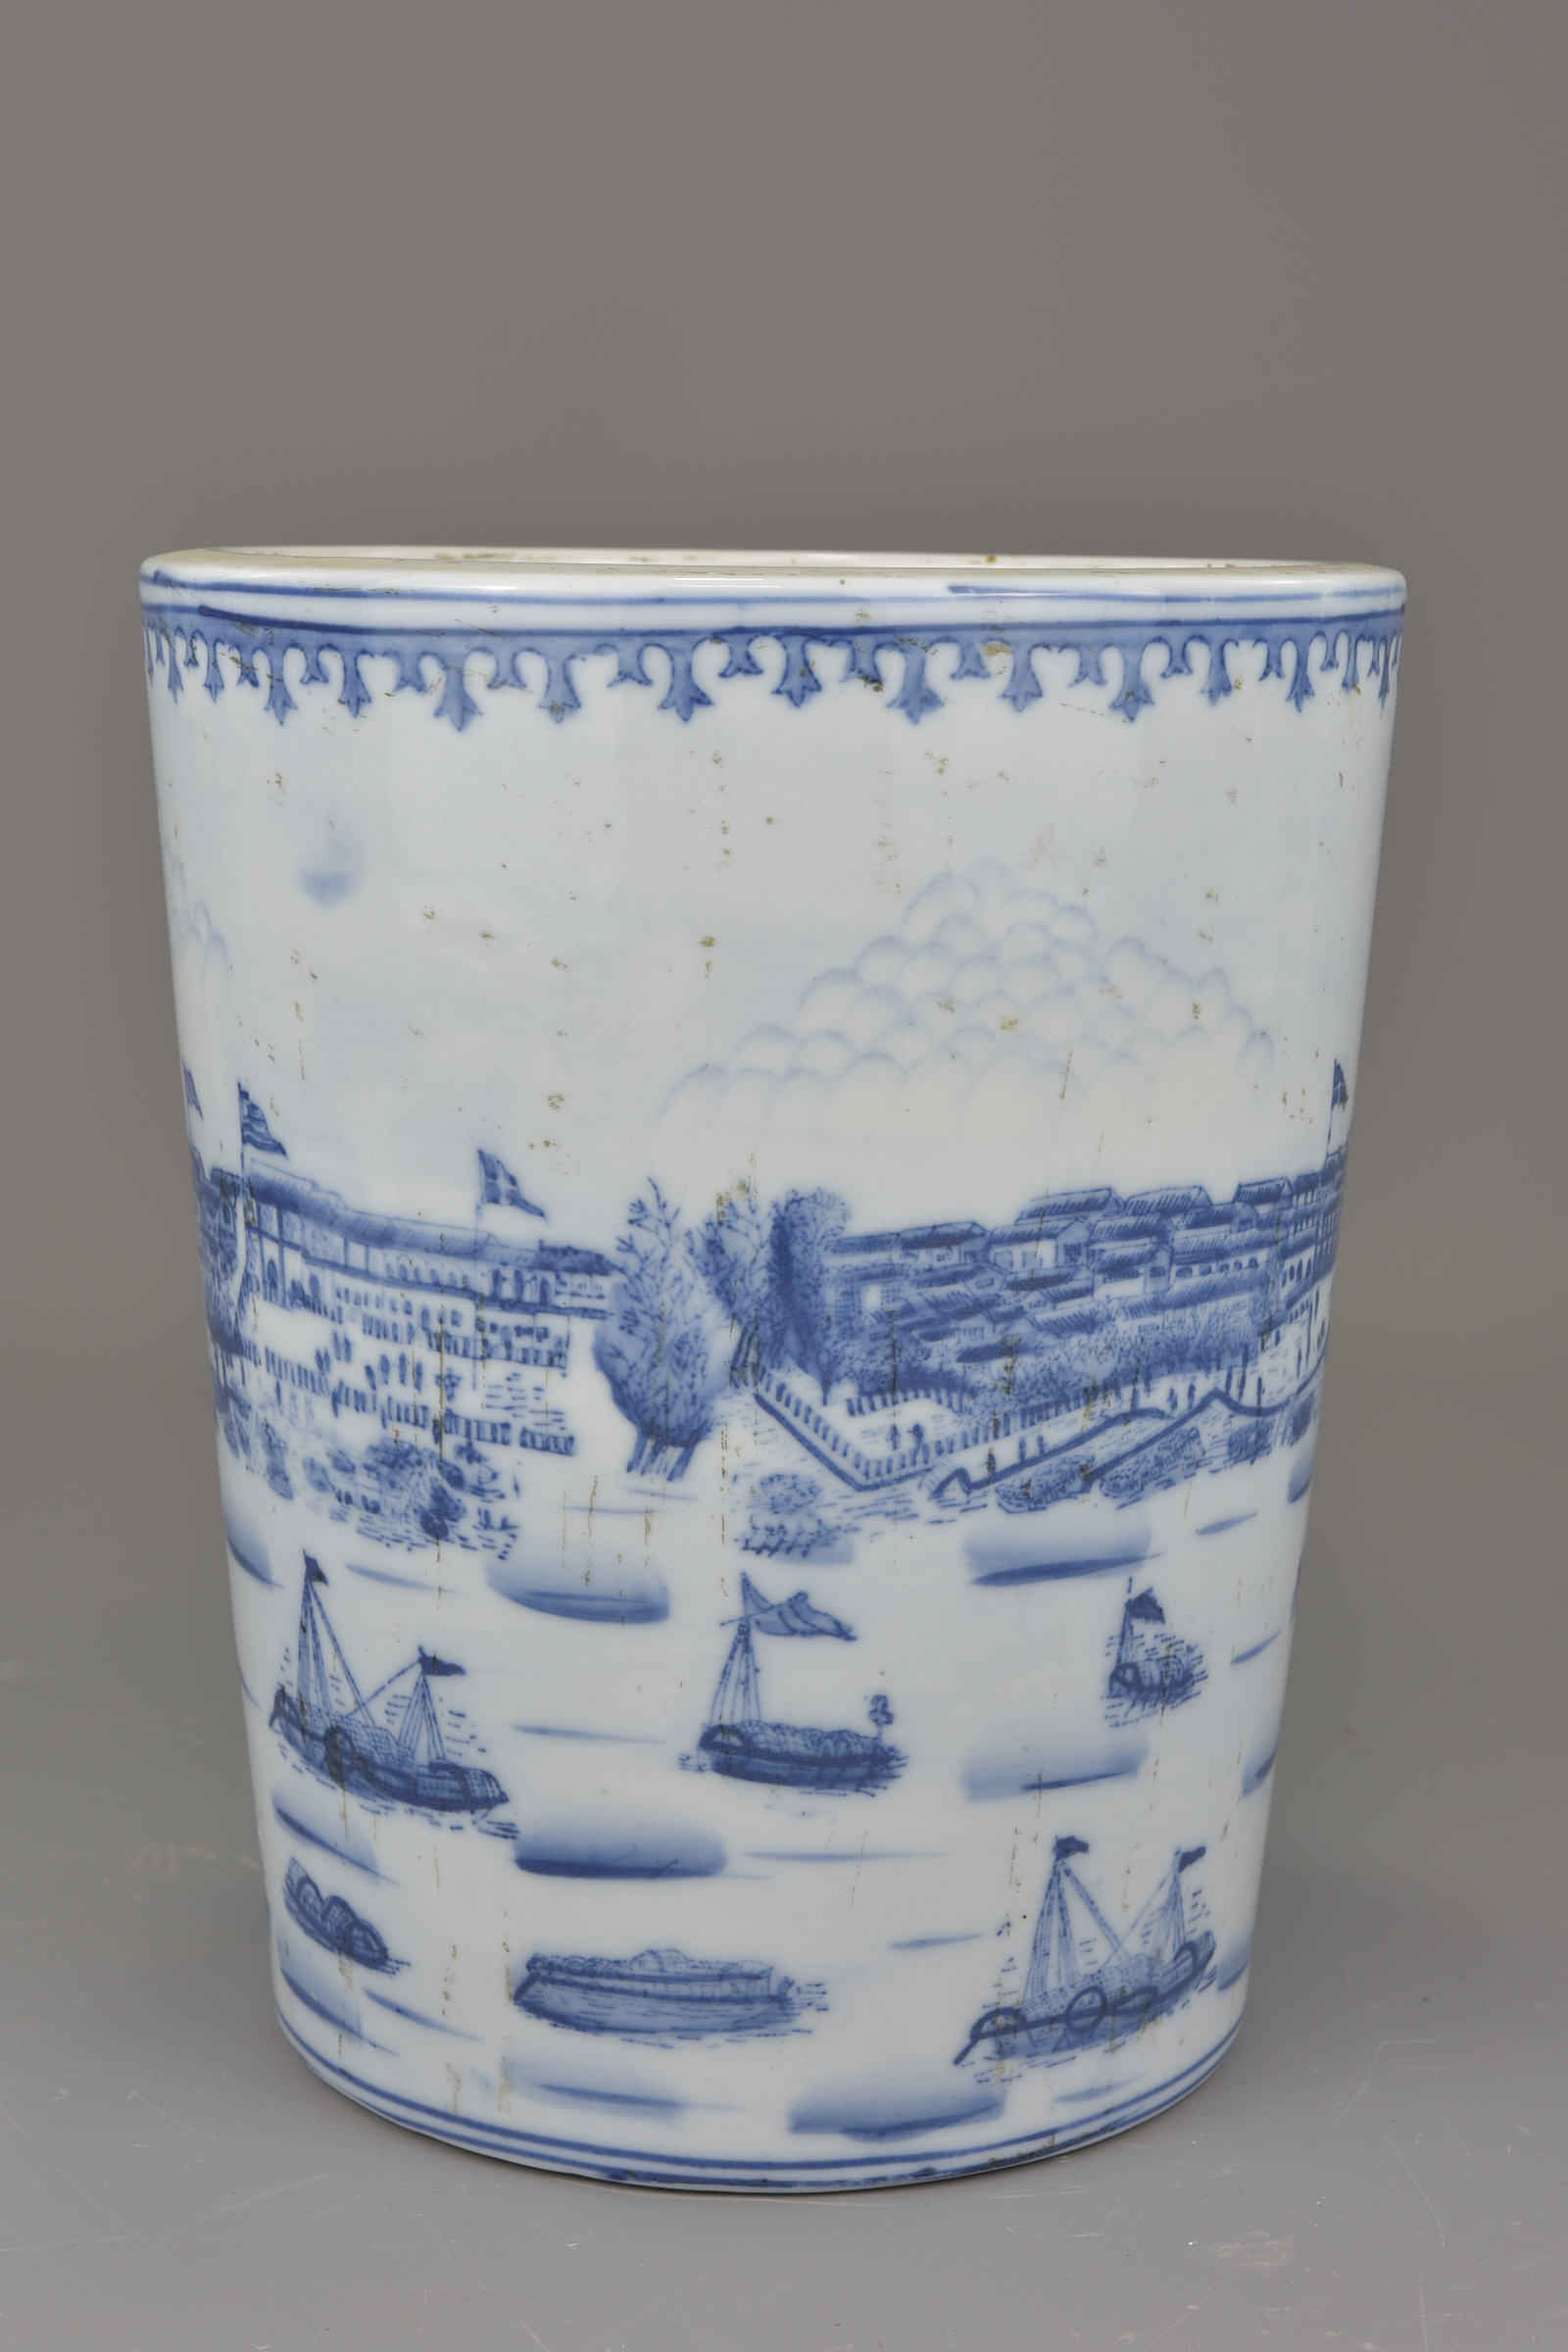 Lot 14 - A Chinese Republican period blue and white porcelain brush pot depicting the '13 Factories of Canton